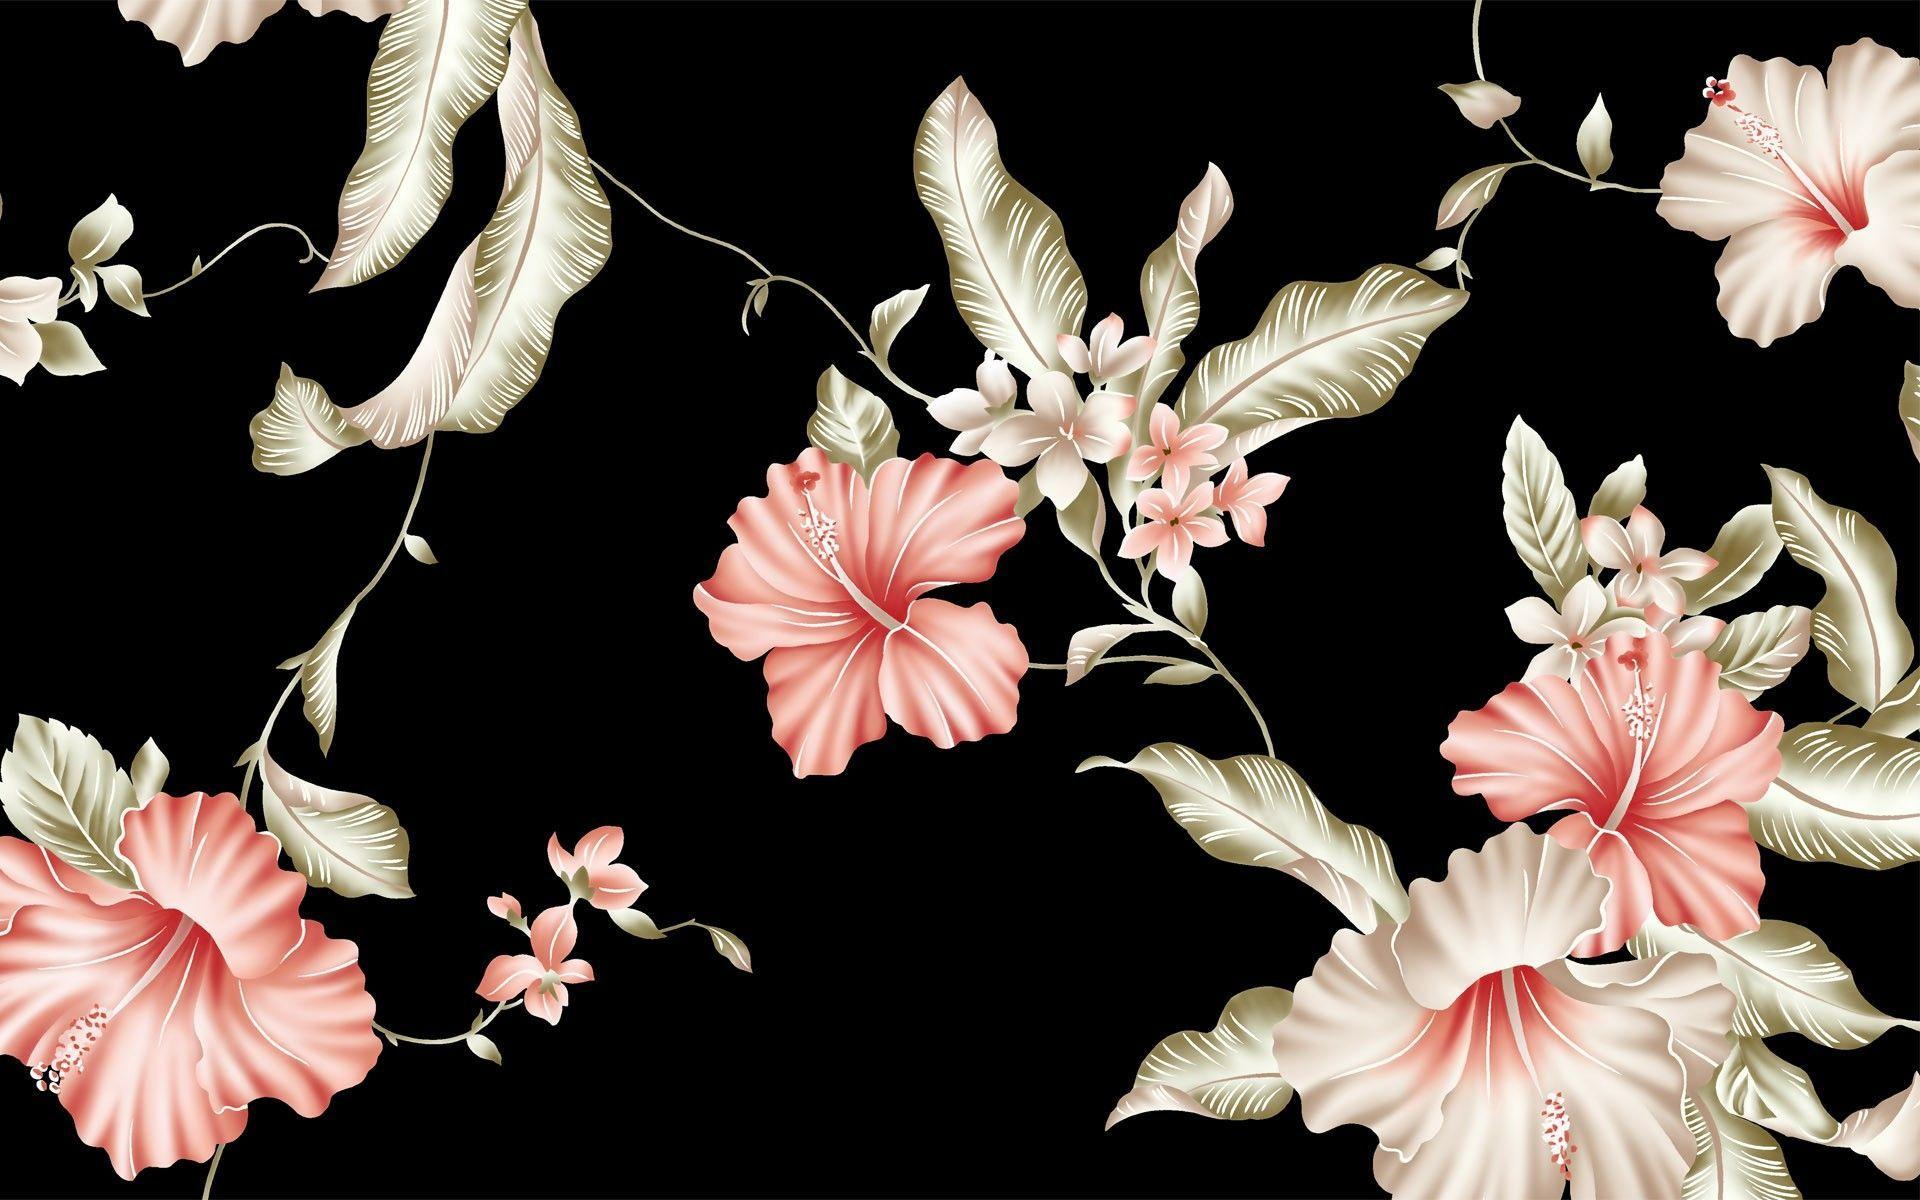 Retro Flower Wallpapers Posted By Samantha Anderson